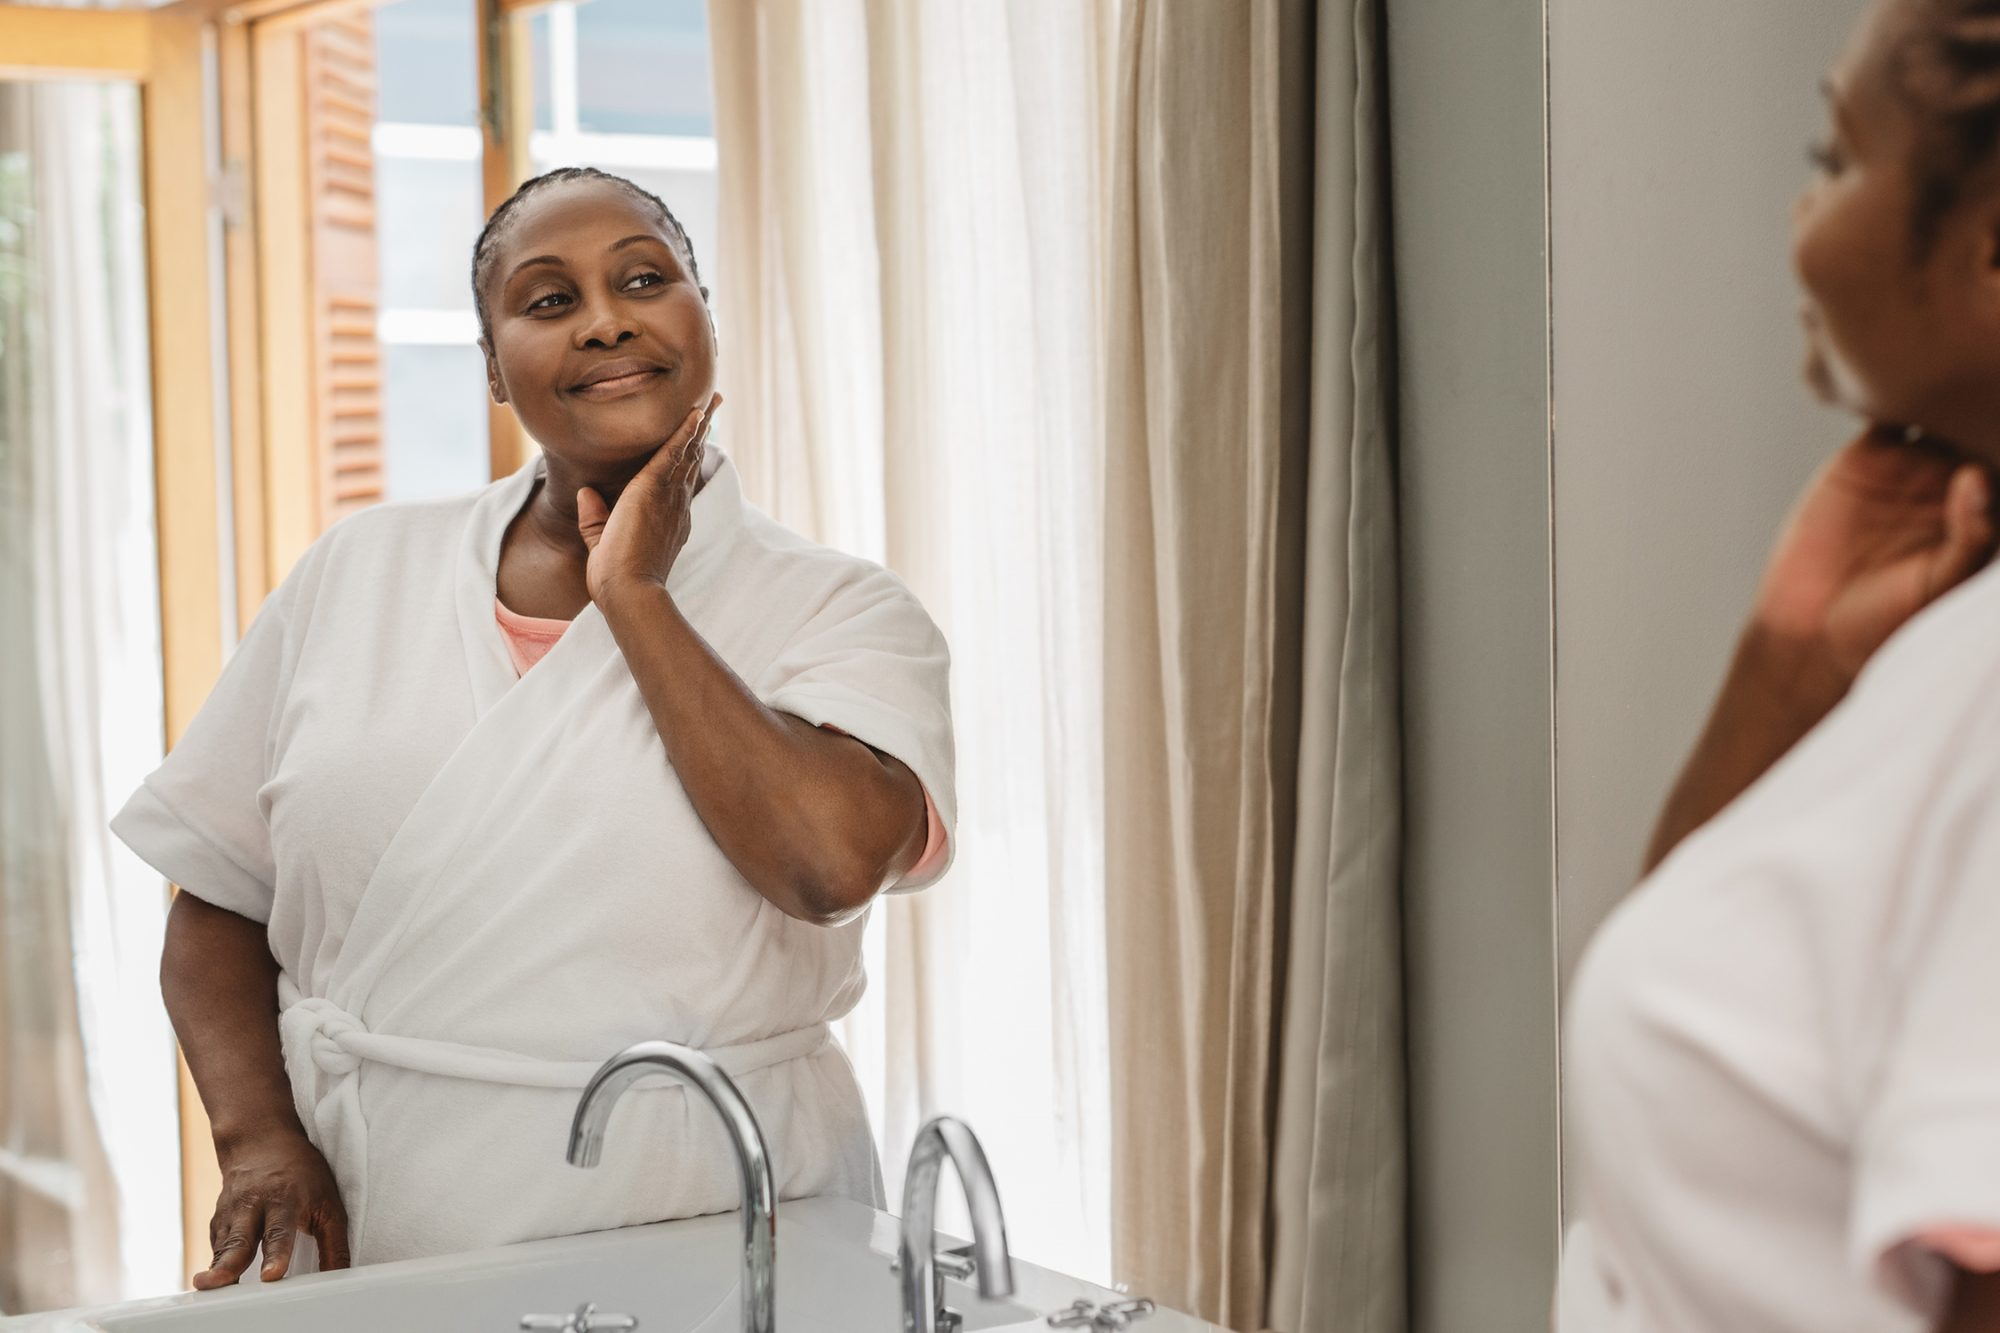 African American woman looking at her complexion in a bathroom